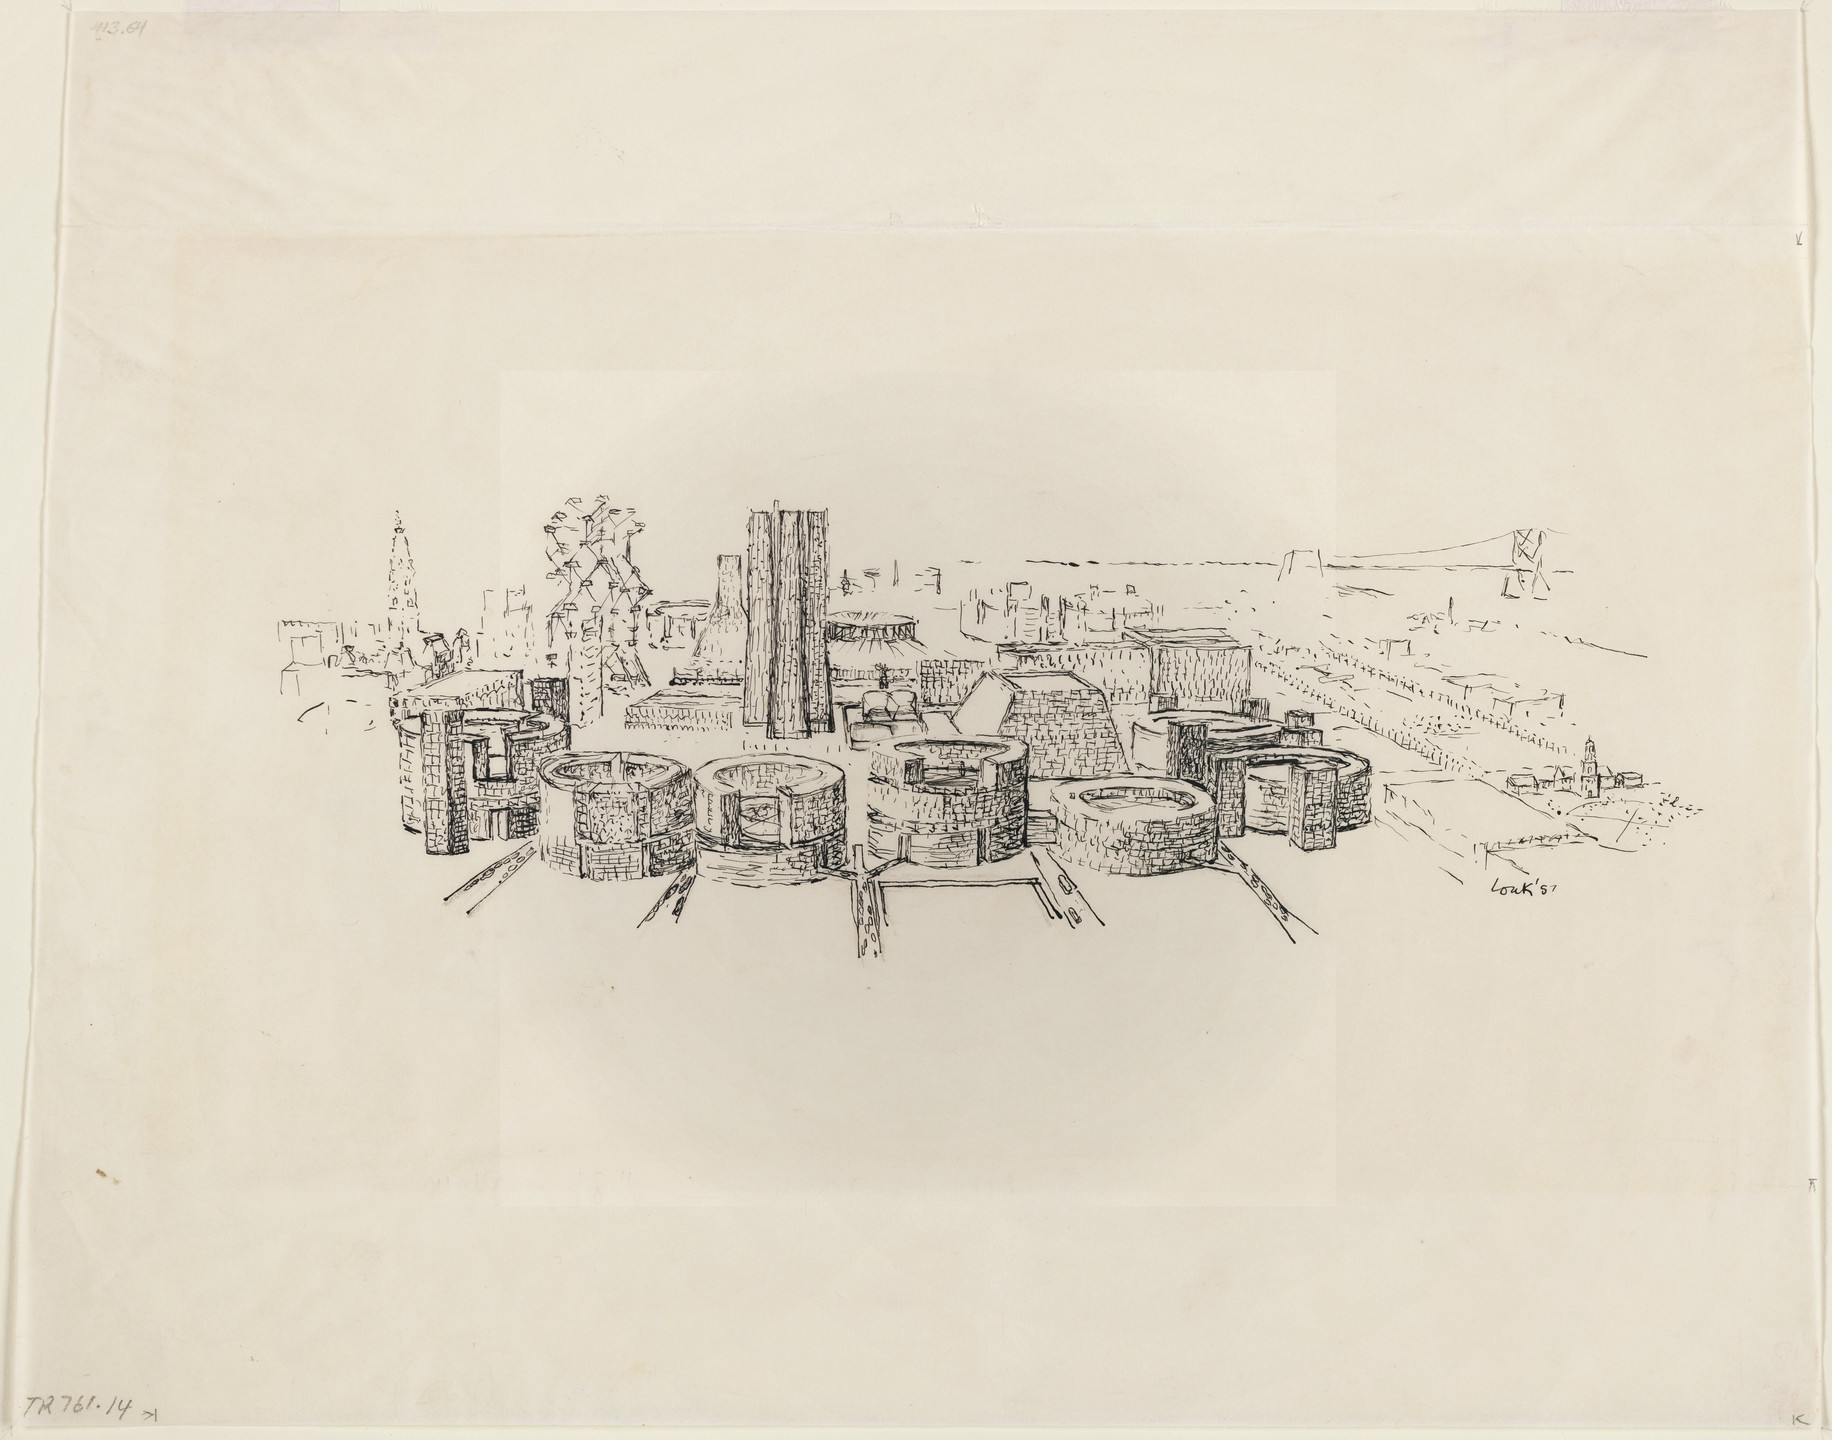 Louis I. Kahn. Civic Center, project, Philadelphia, Pennsylvania, Aerial perspective. 1957